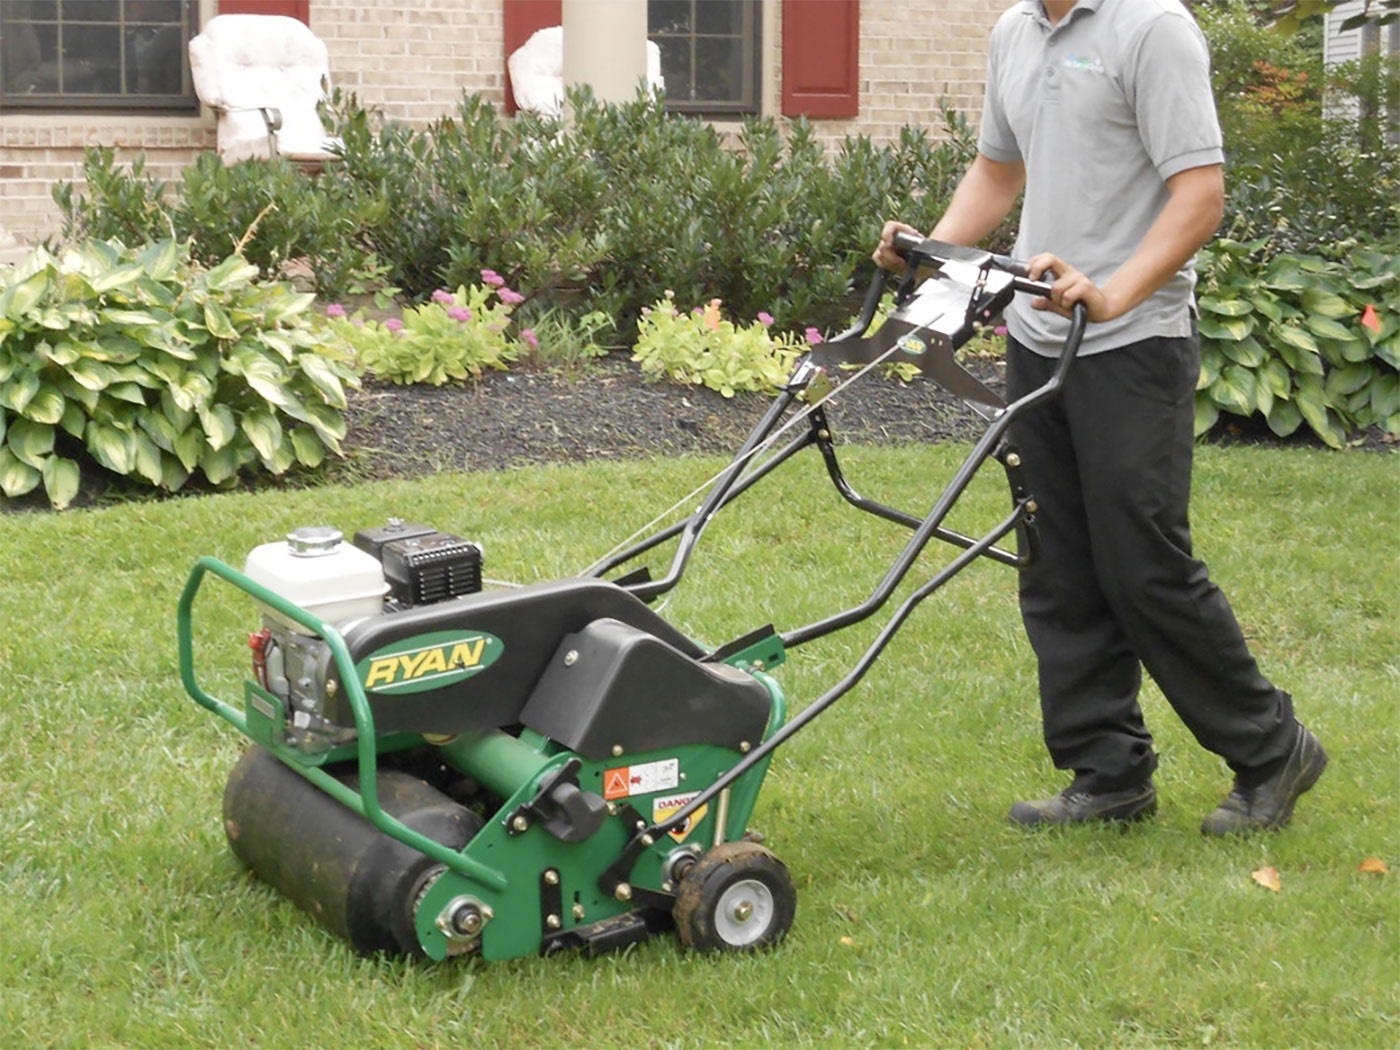 Man with gray shirt and black pants using the lawn mower